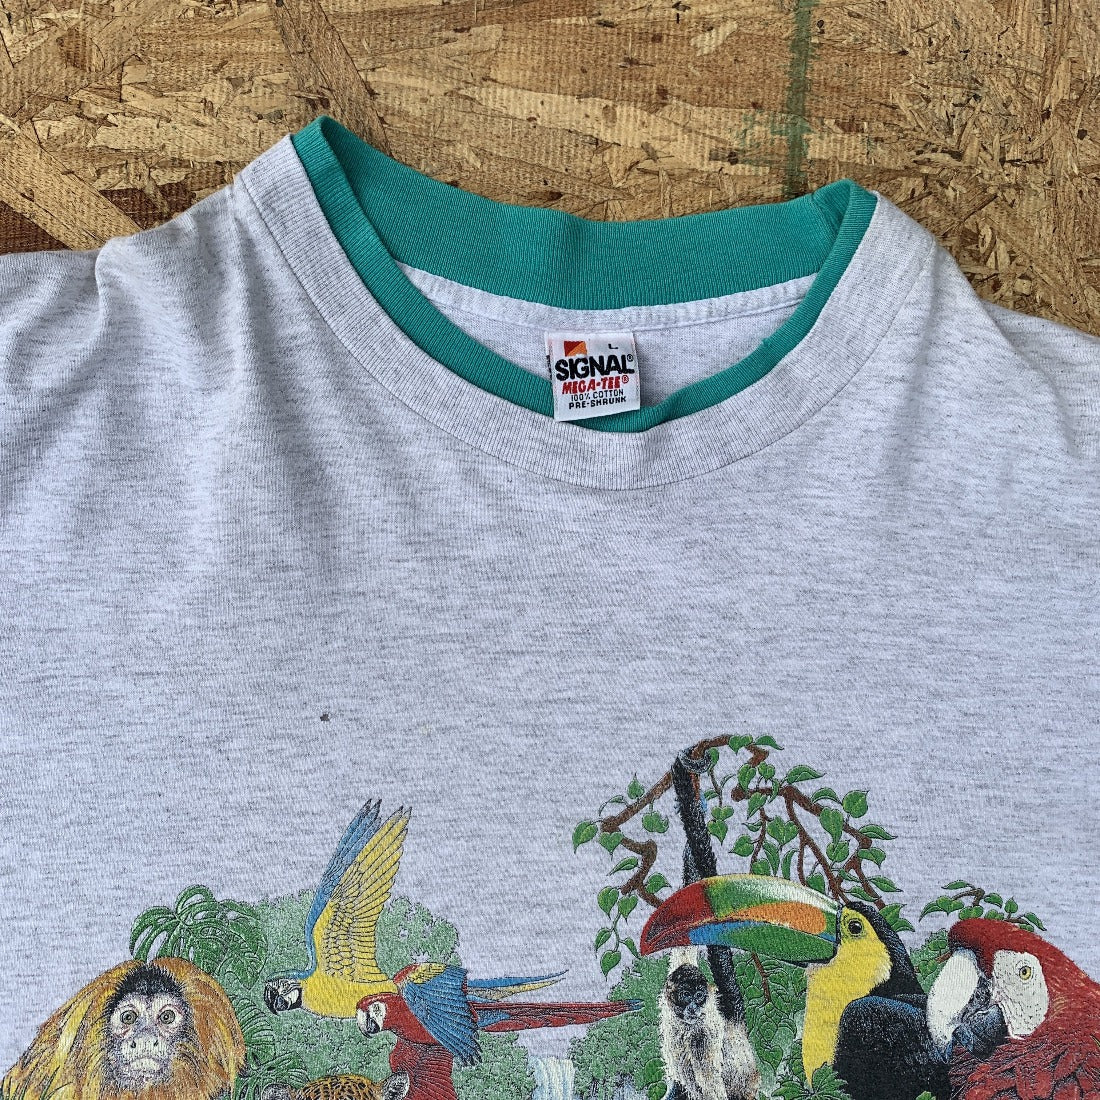 90s Rainforest 80s Tshirt with double crew neck and sleeve | L  Vintage